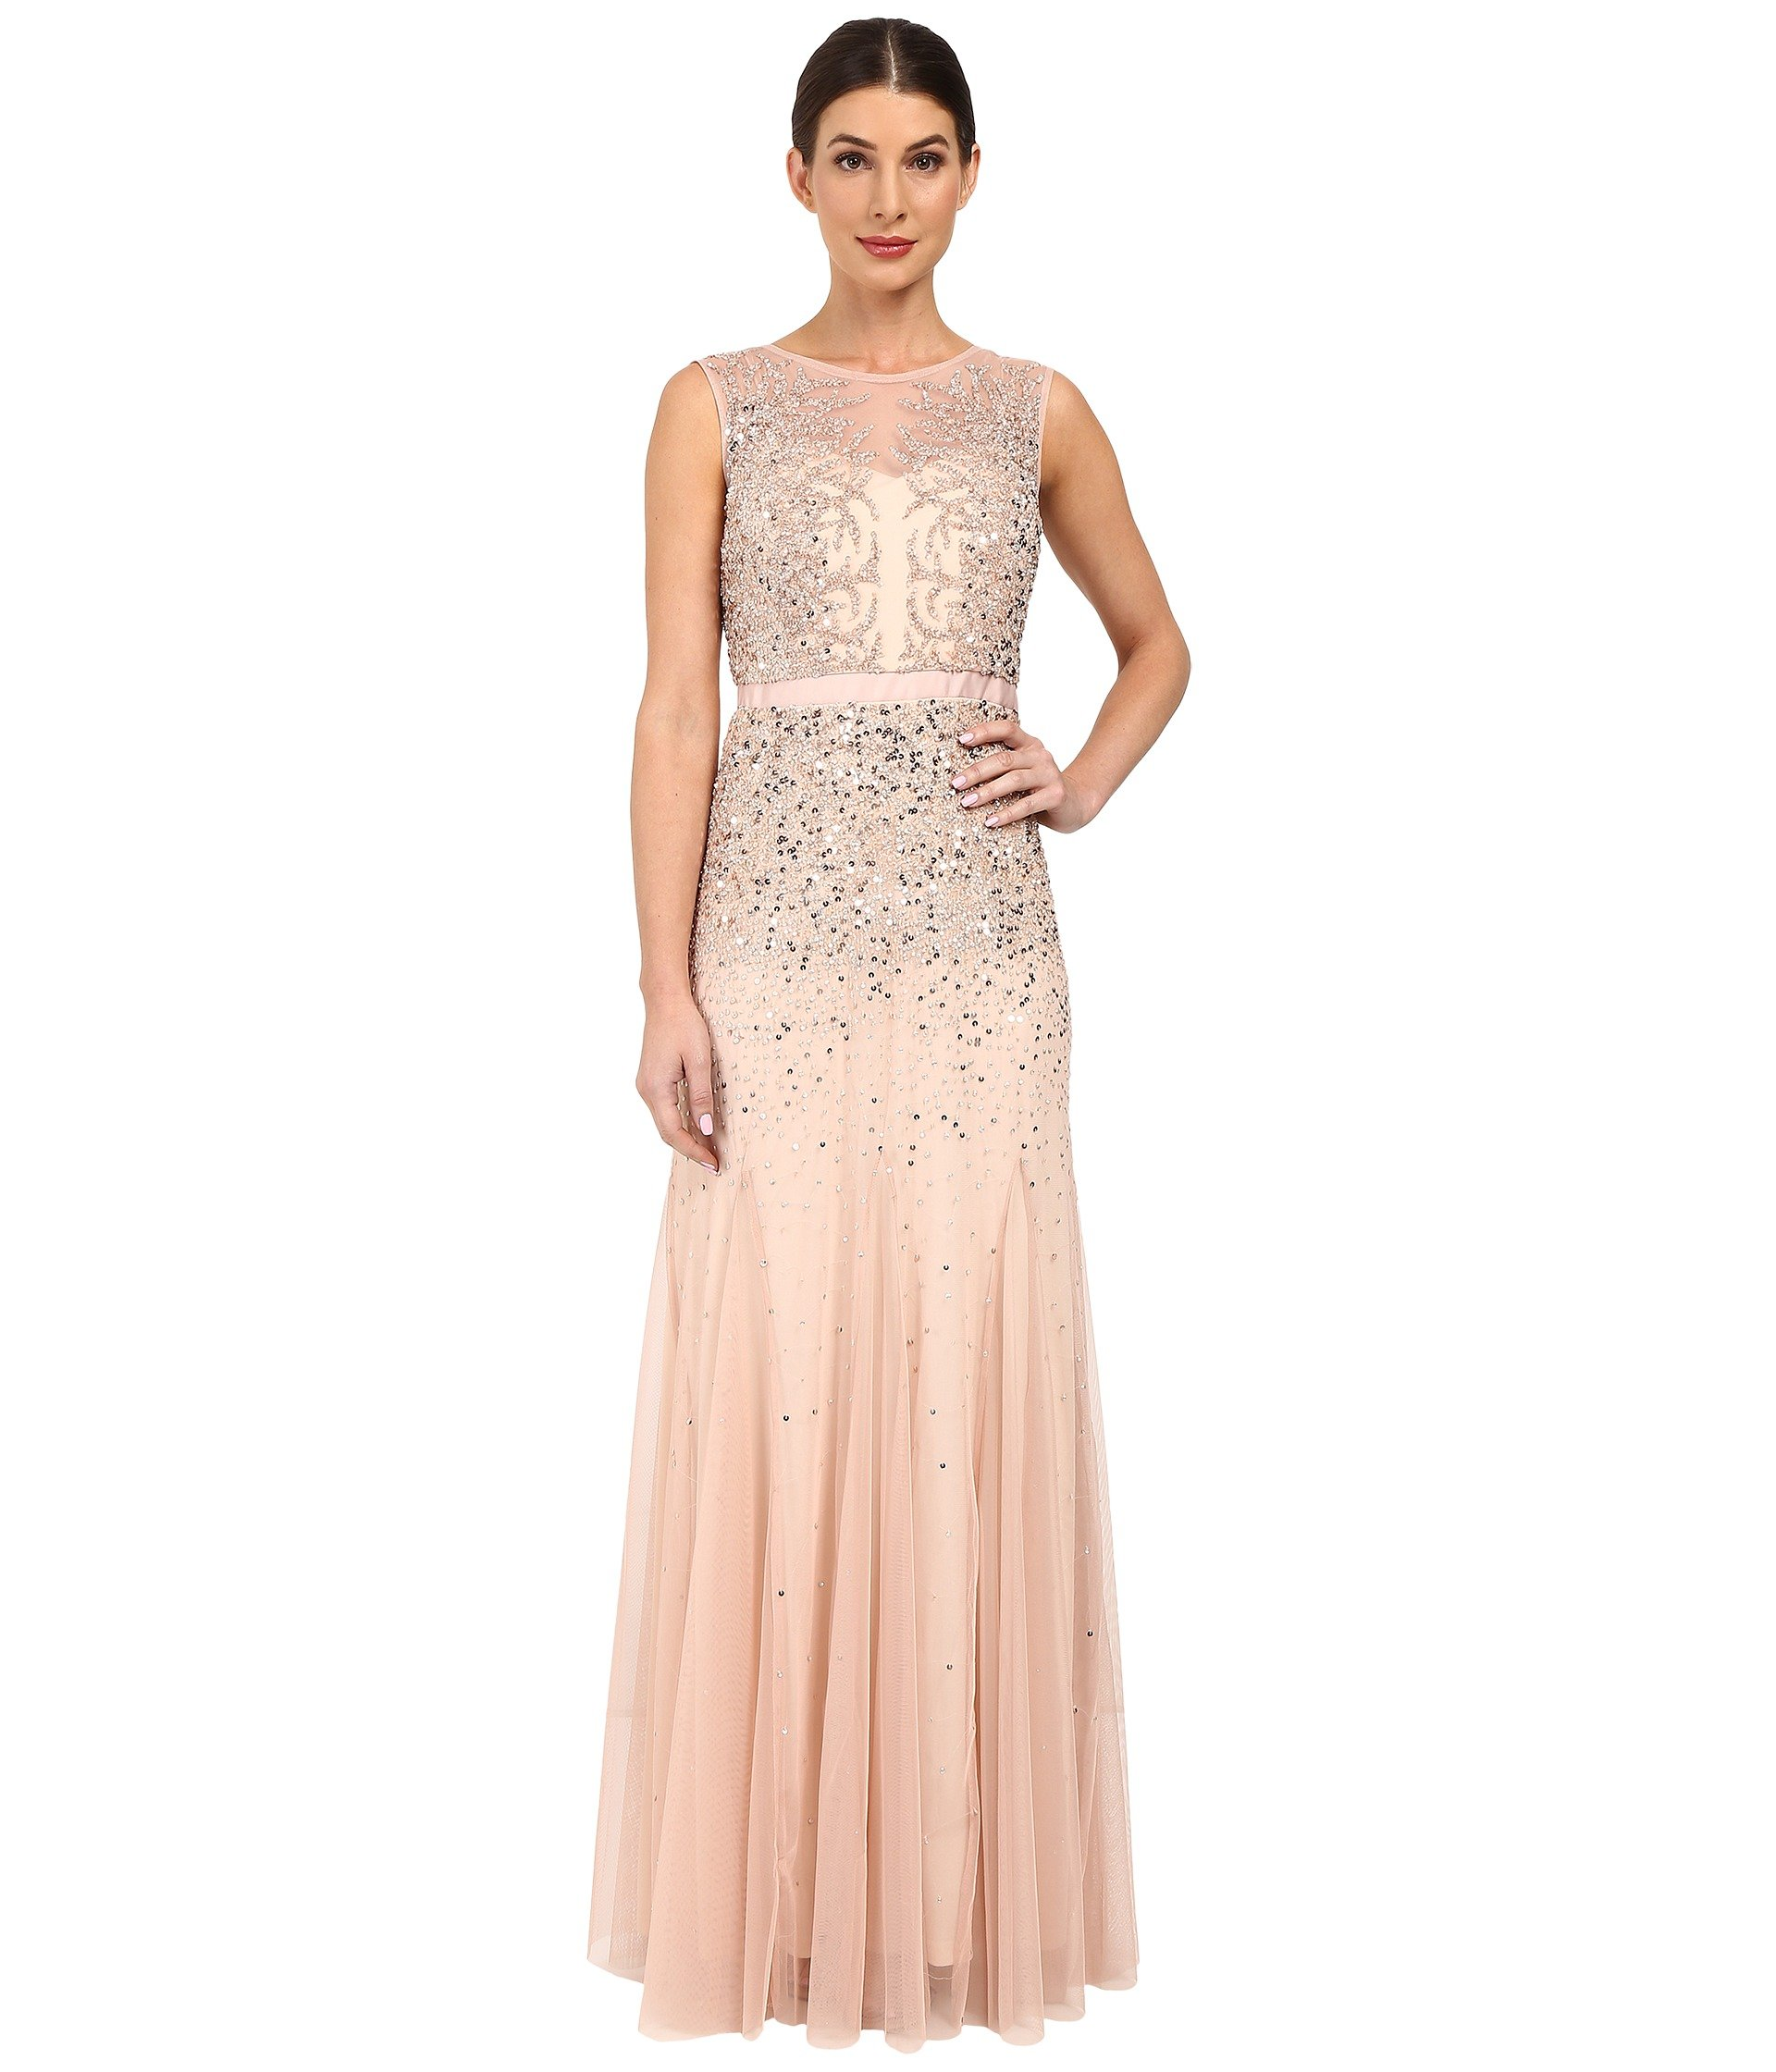 ADRIANNA PAPELL BEADED ILLUSION GOWN (PROM), BLUSH | ModeSens